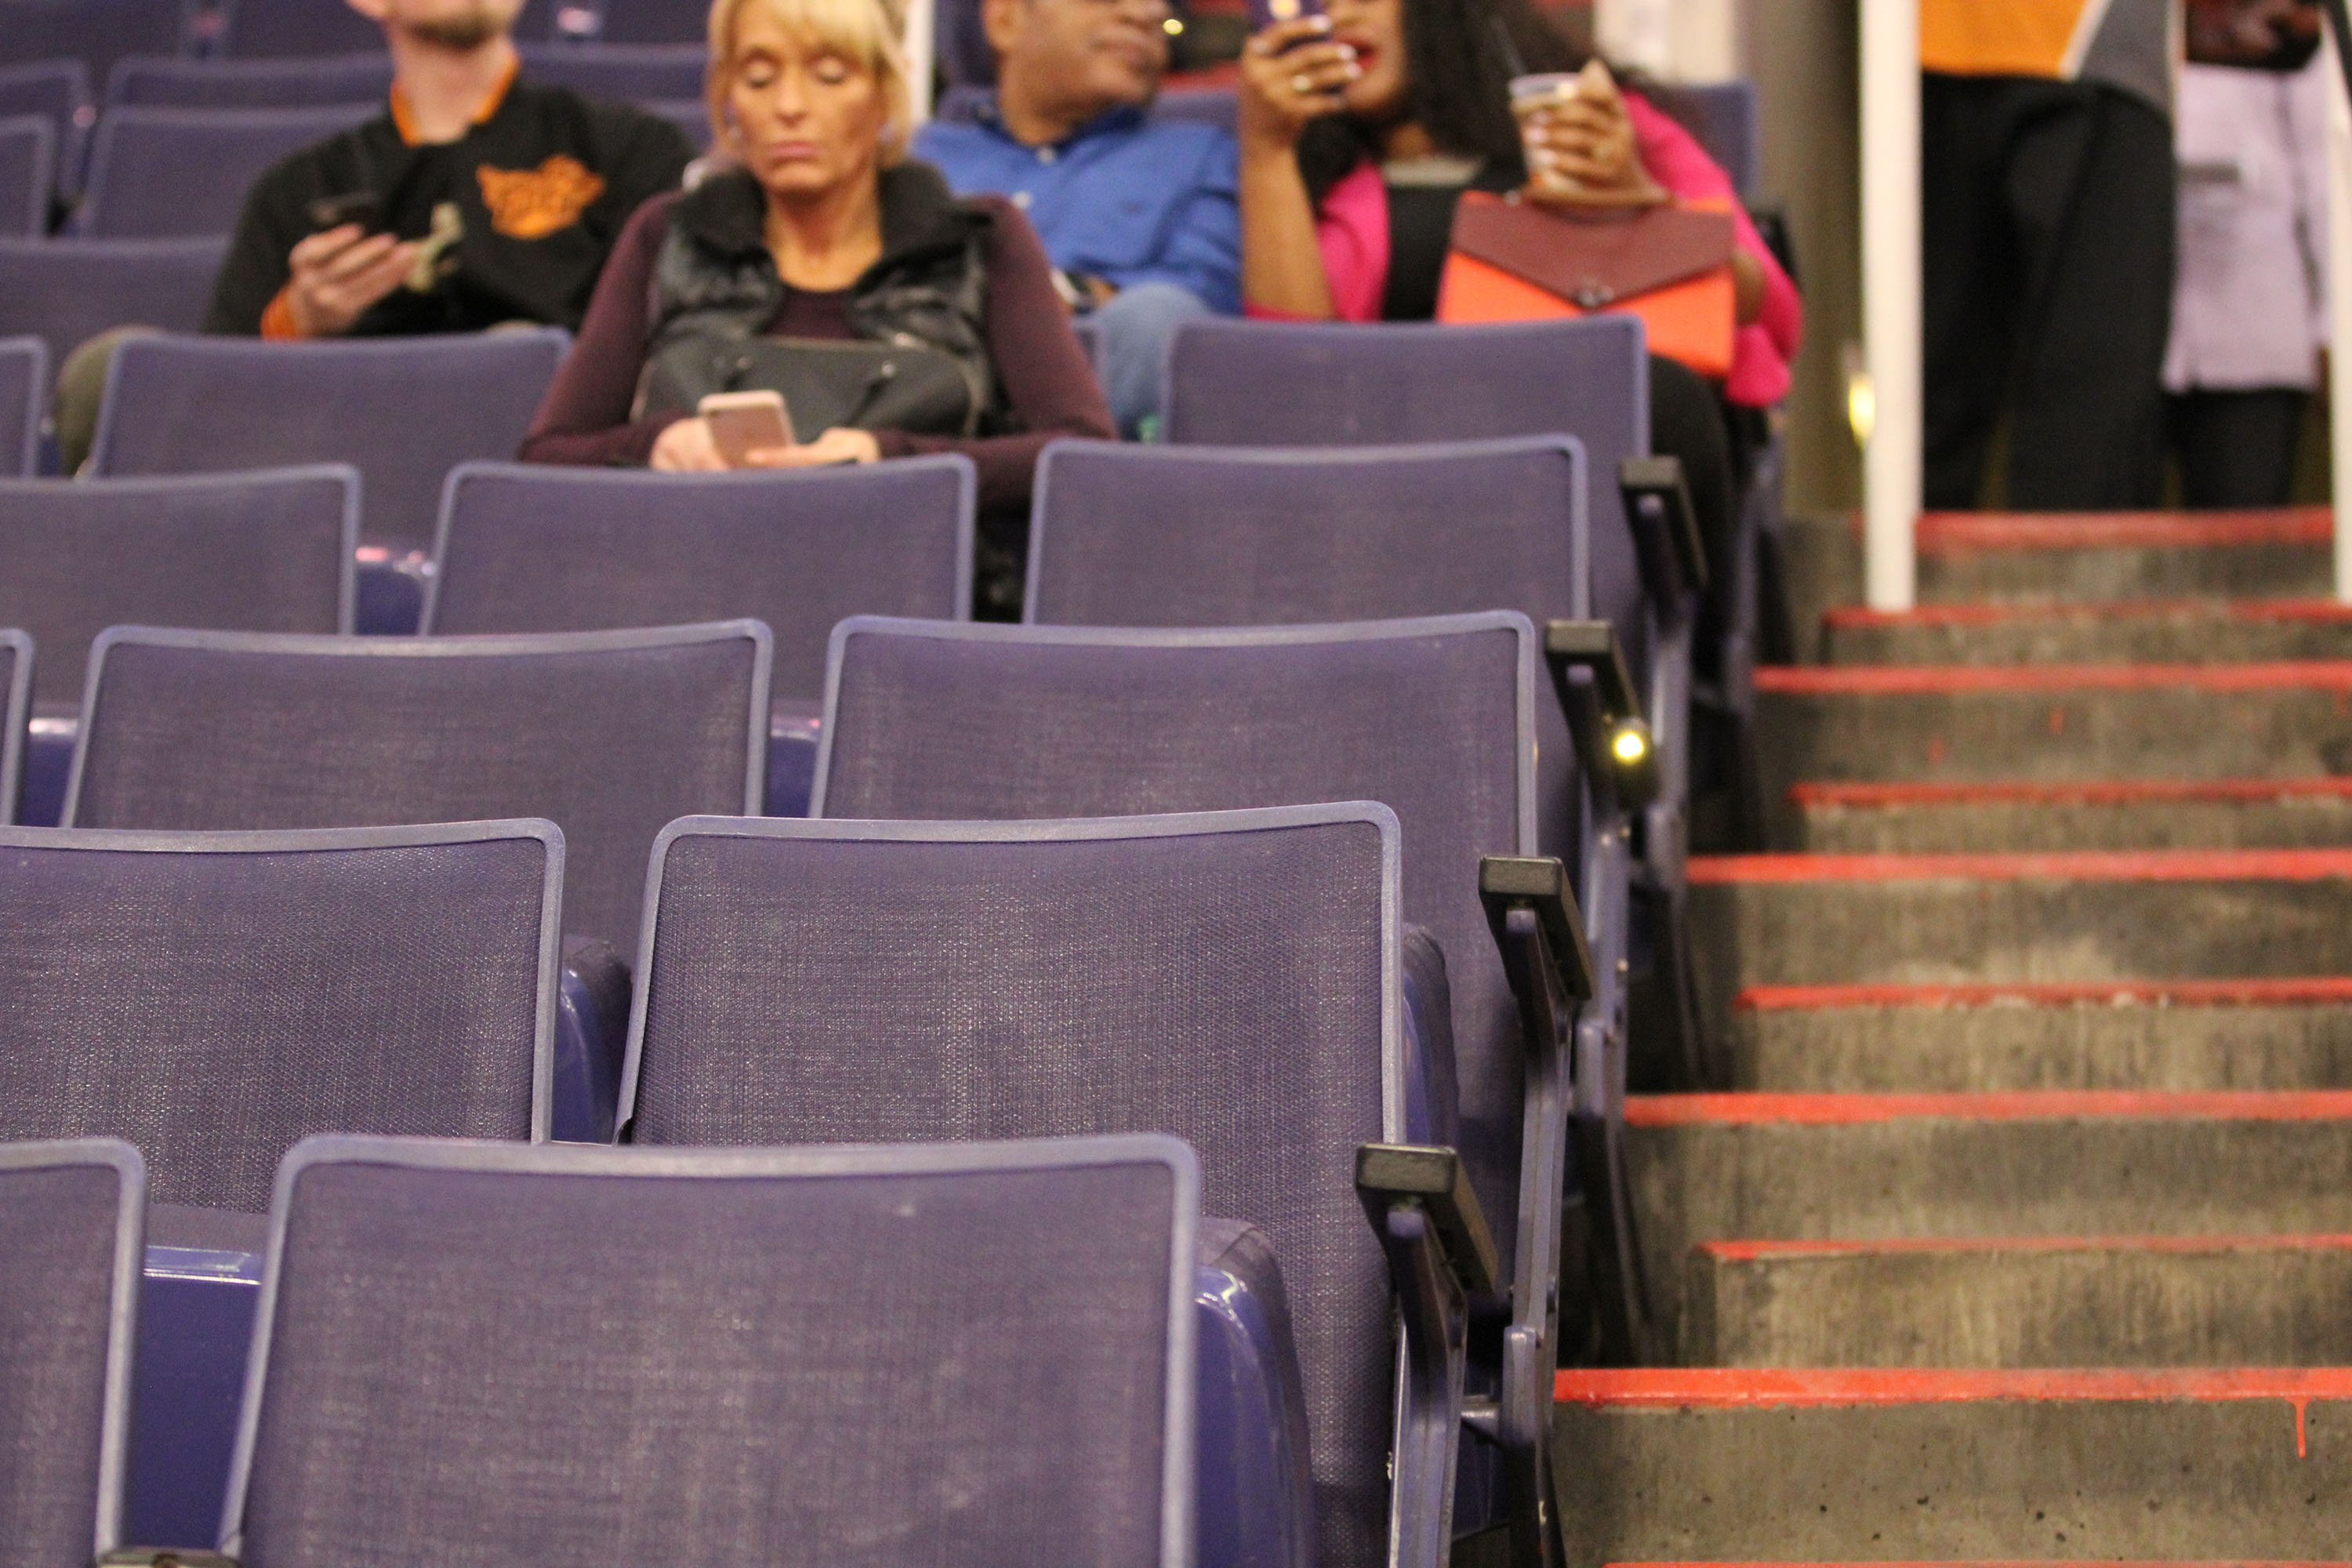 The fans who filled this seat — section, 113, row 15, seat 12 — at Talking Stick Resort Arena during four nights of a recent Suns homestand were an interesting cross section. (Photo by Jamie Nish/ Cronkite News)